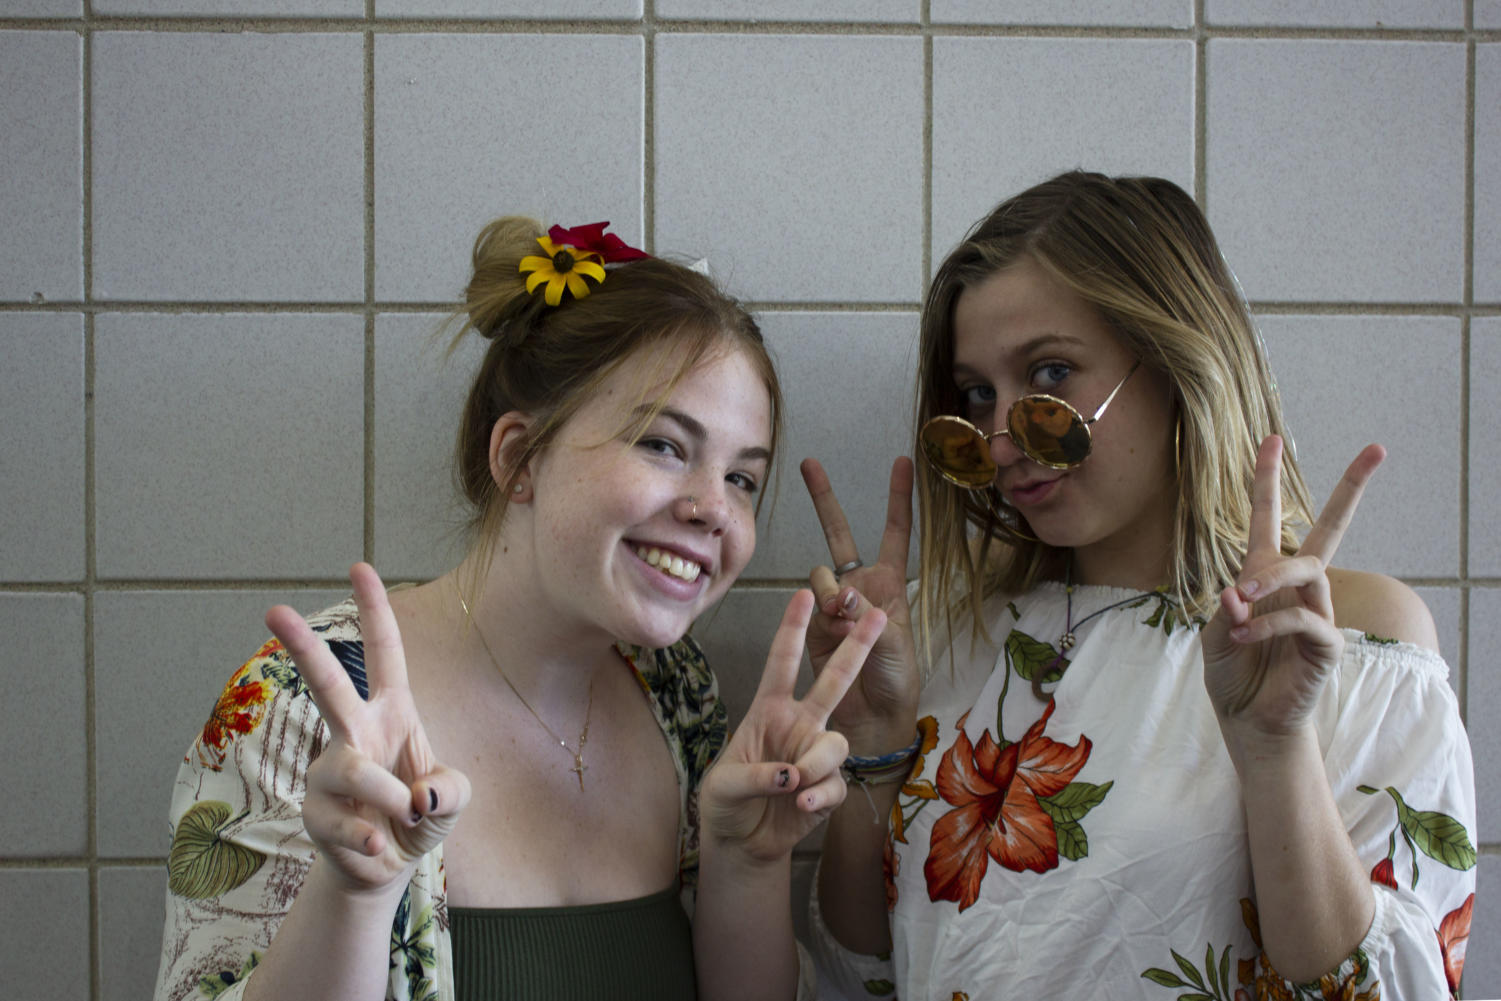 Seniors Abi Loughrey and Caroline Morris peacefully show spirit with the 3rd day--flower power!